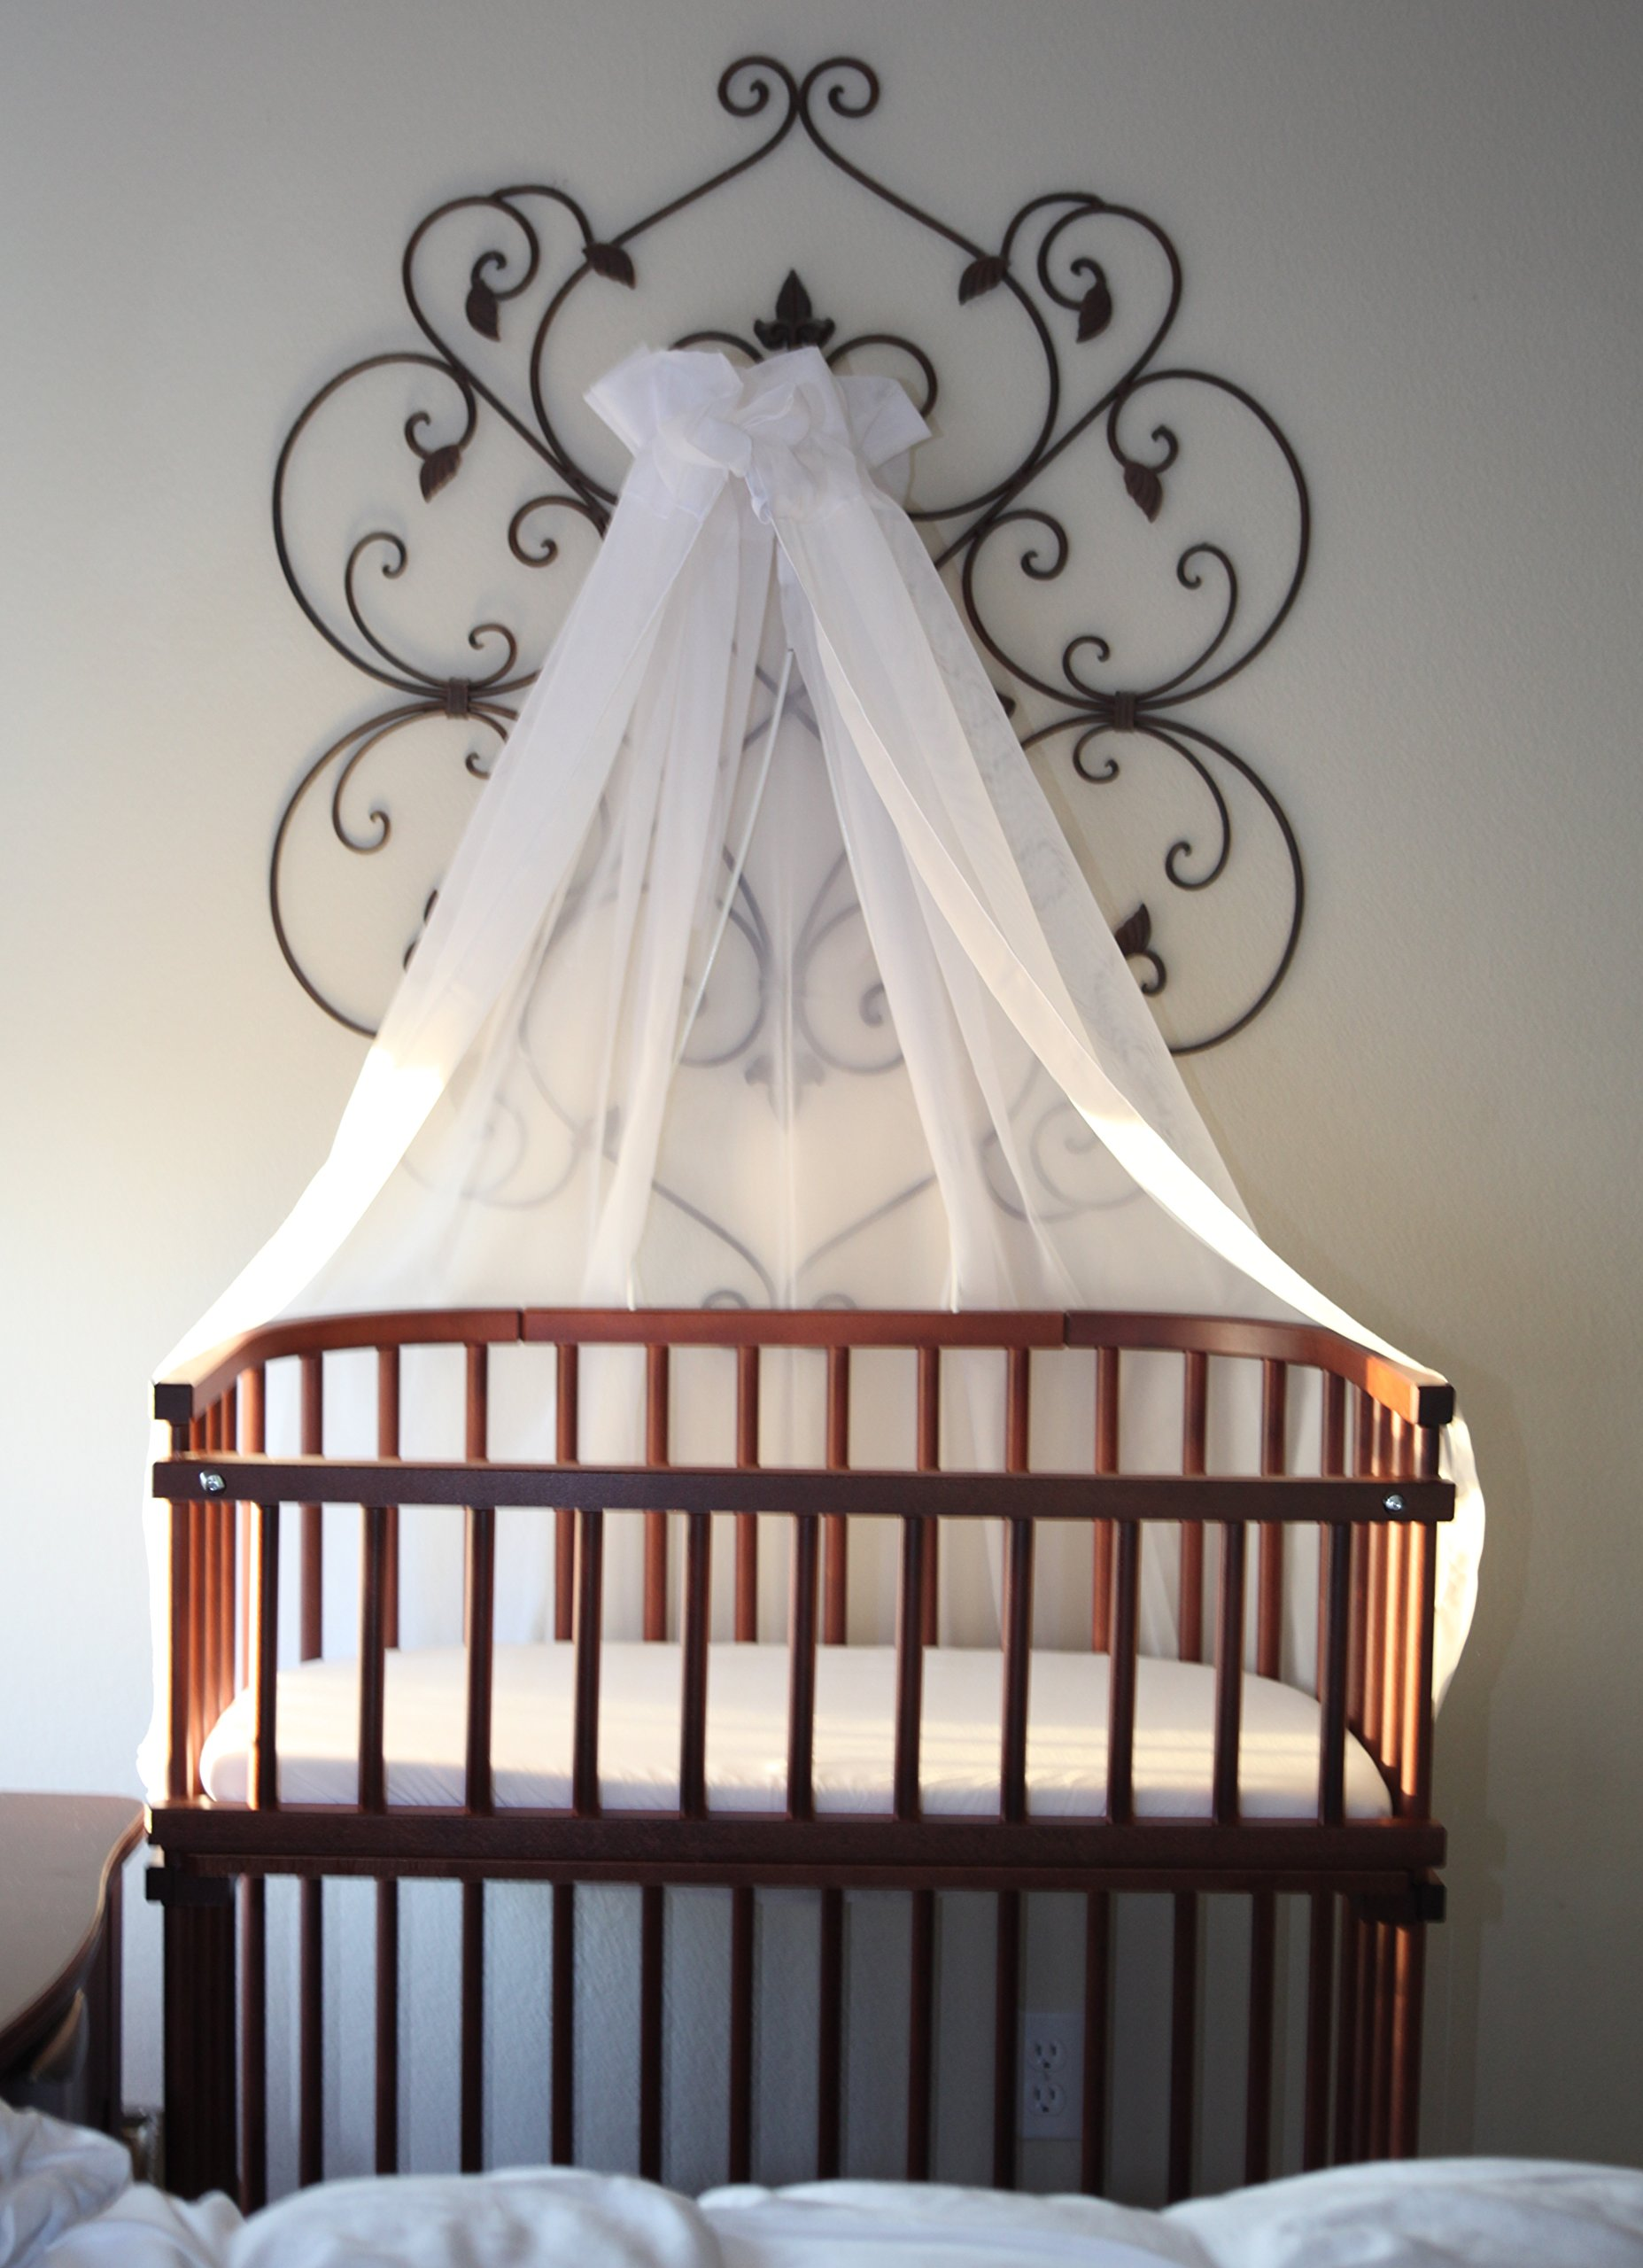 Canopy for babybay - All White by babybay (Image #5)